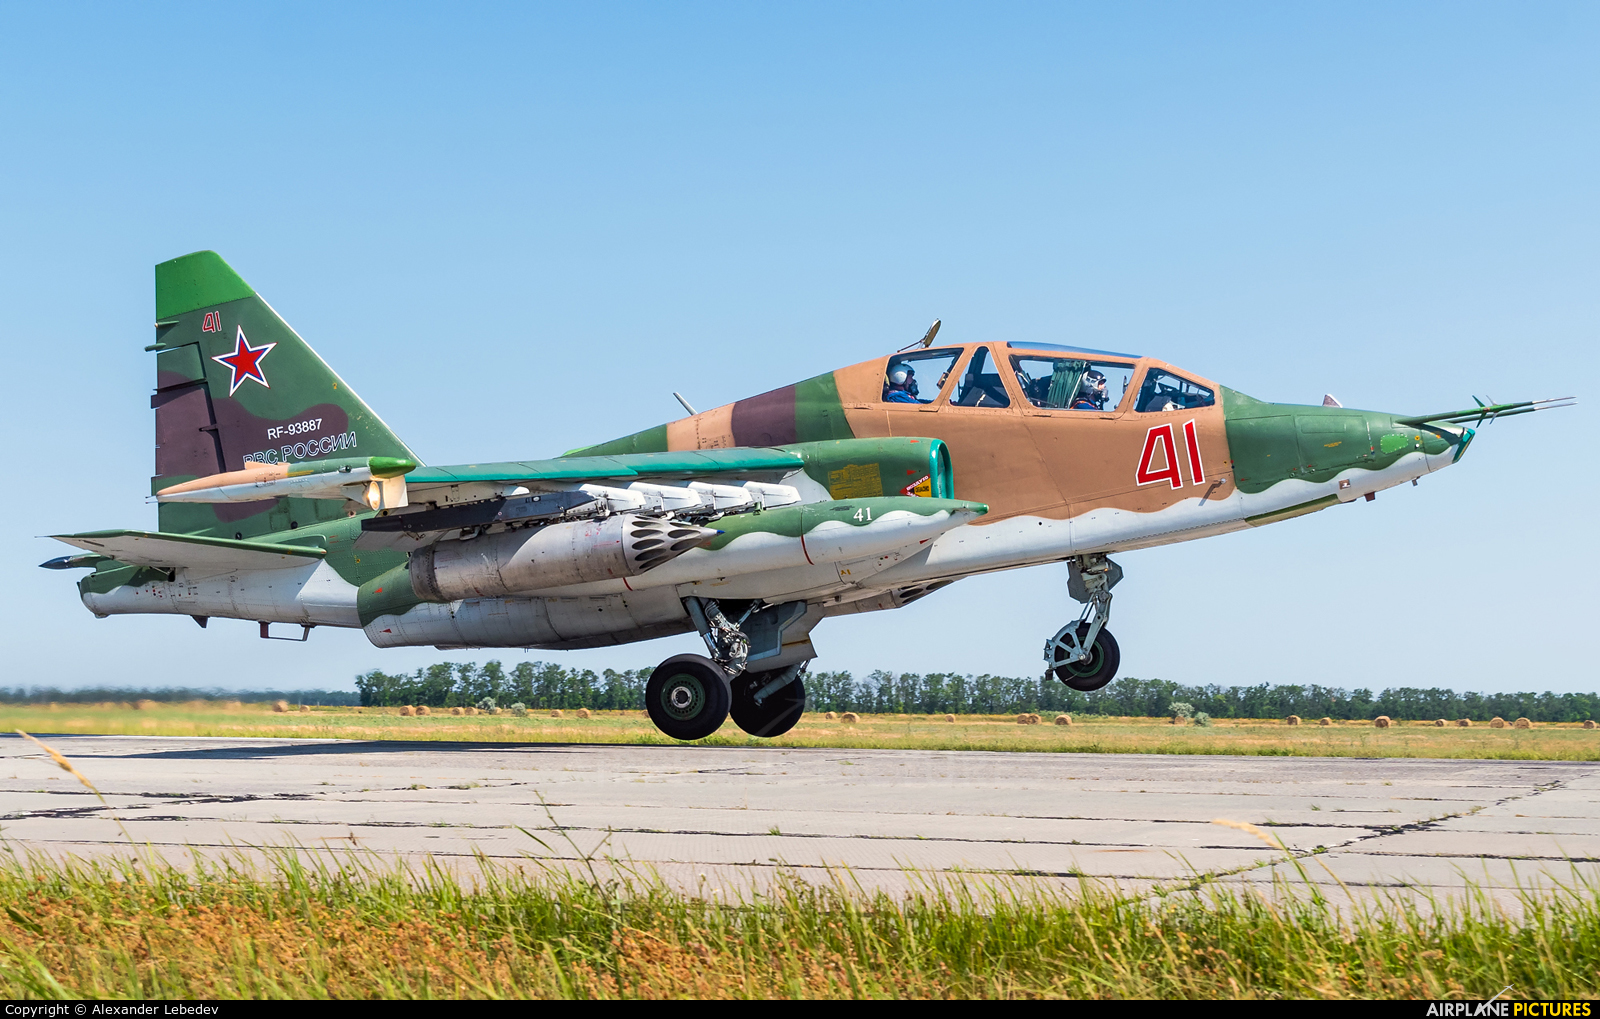 Russia - Air Force 41 aircraft at Undisclosed Location